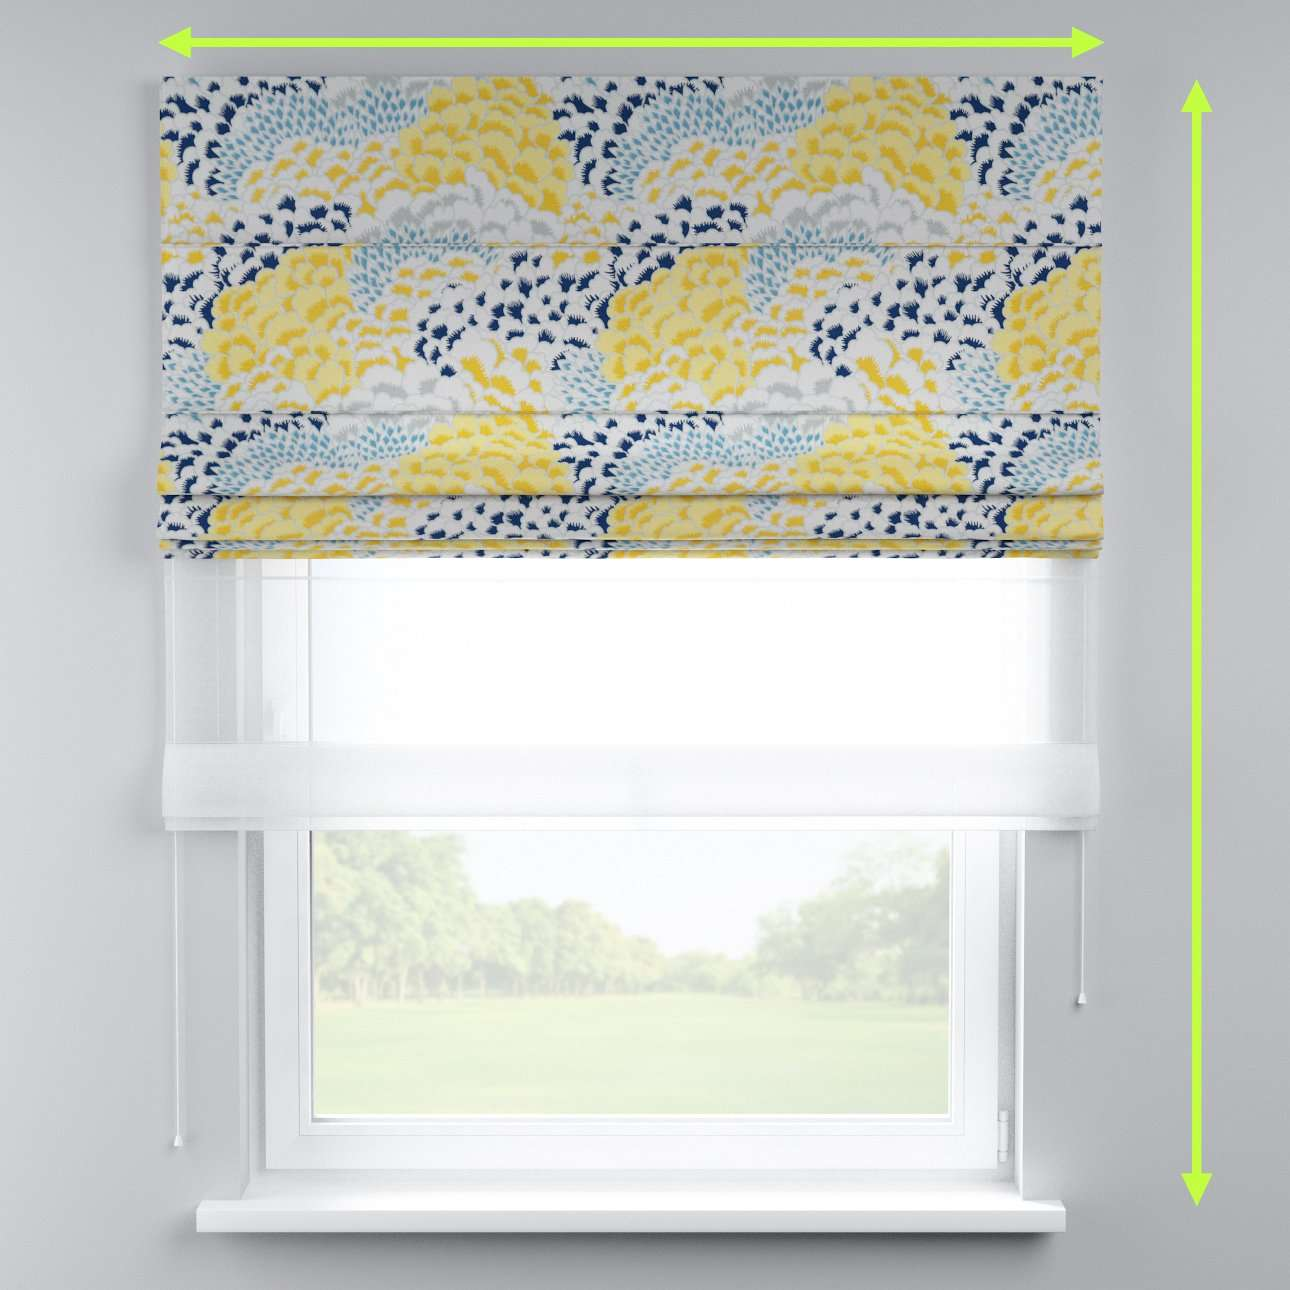 Voile and fabric roman blind (DUO II) in collection Brooklyn, fabric: 137-86